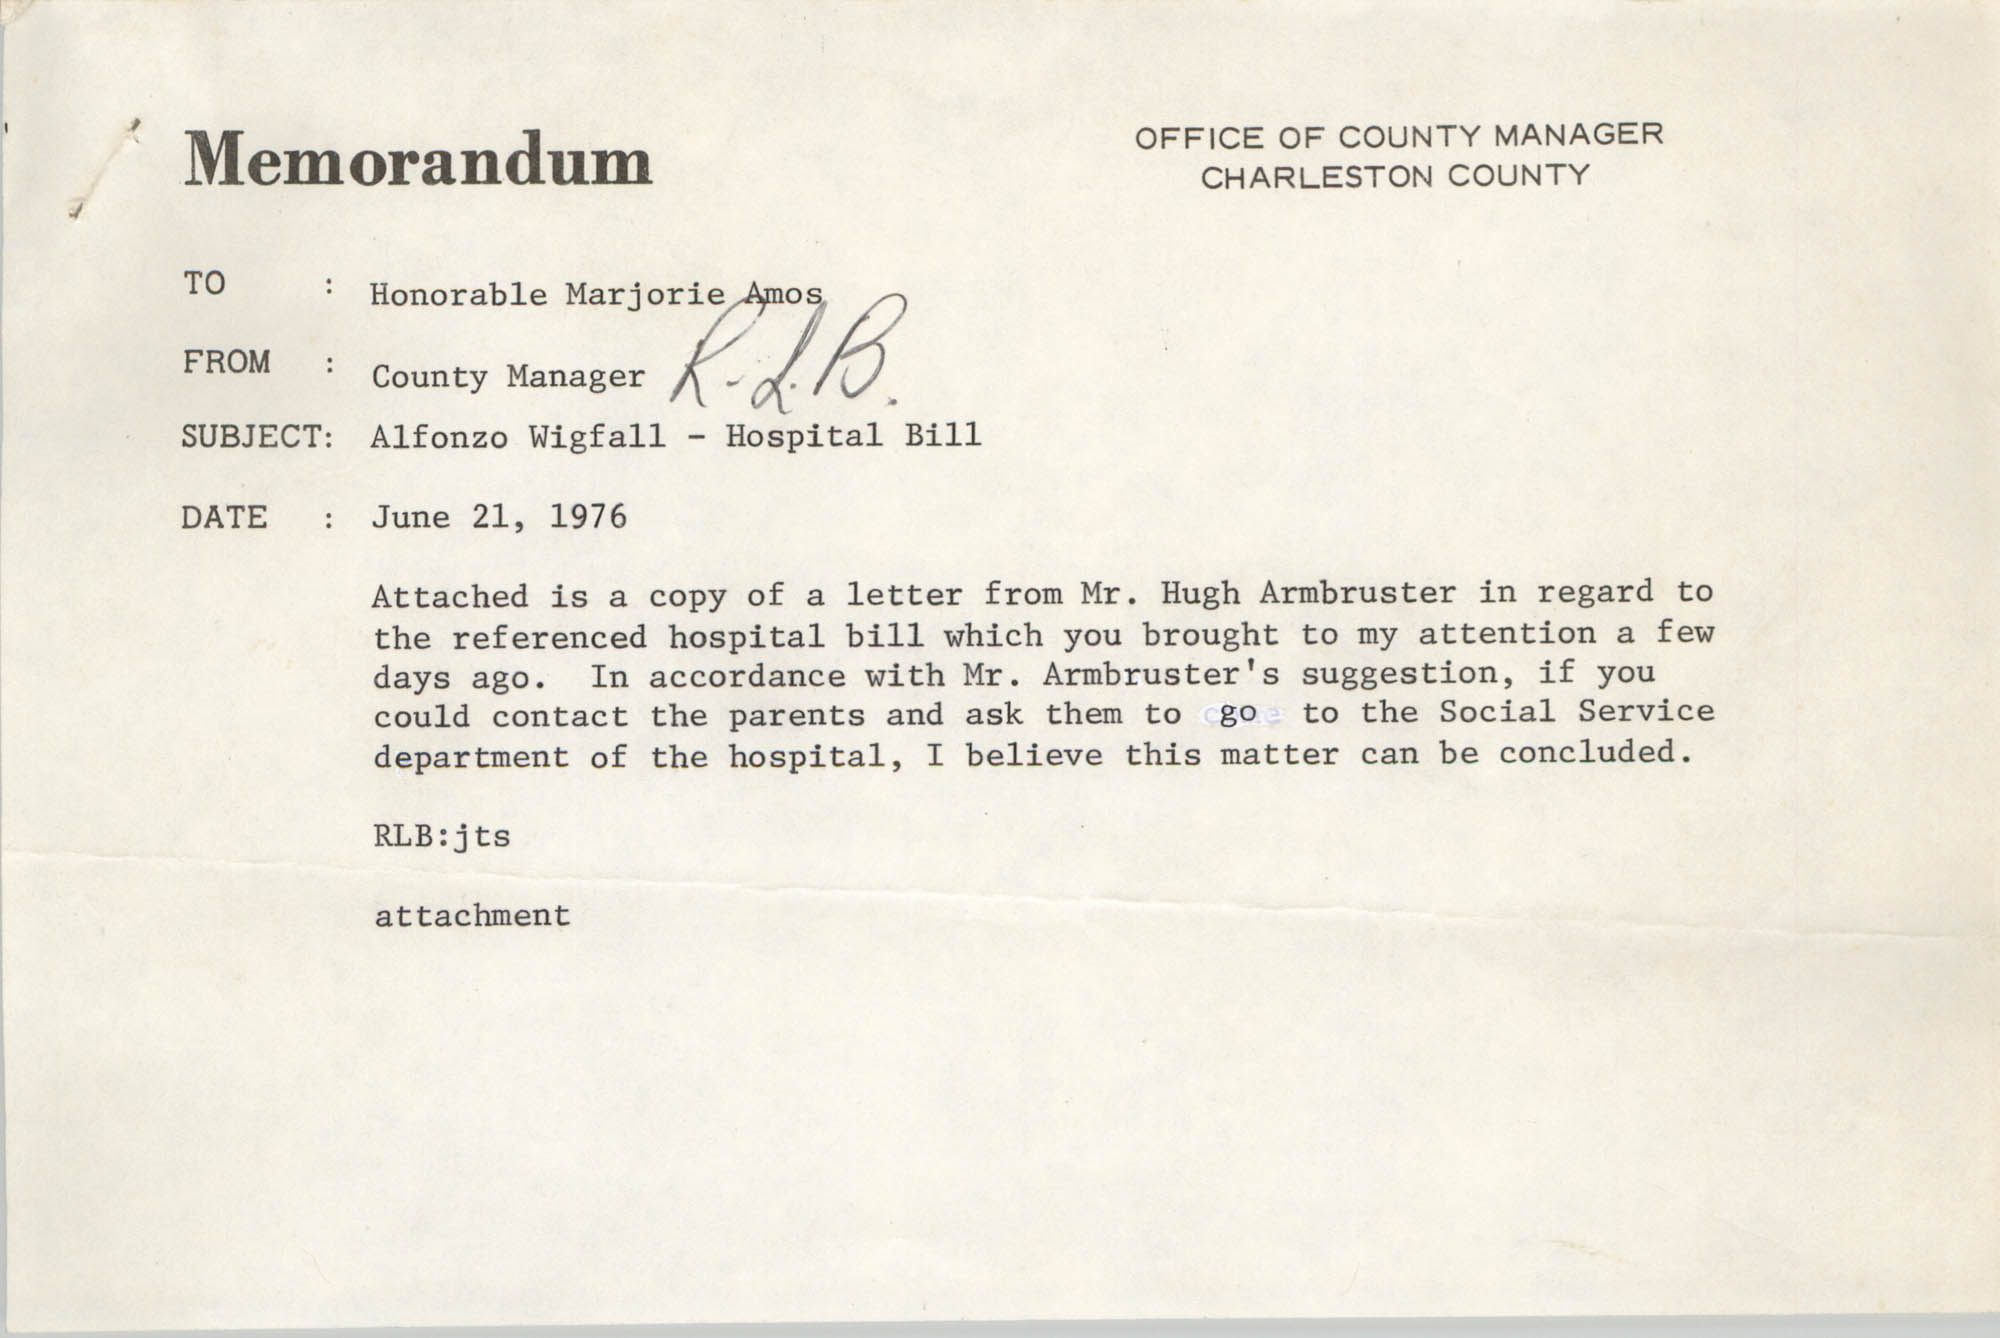 Memorandum, June 21, 1976